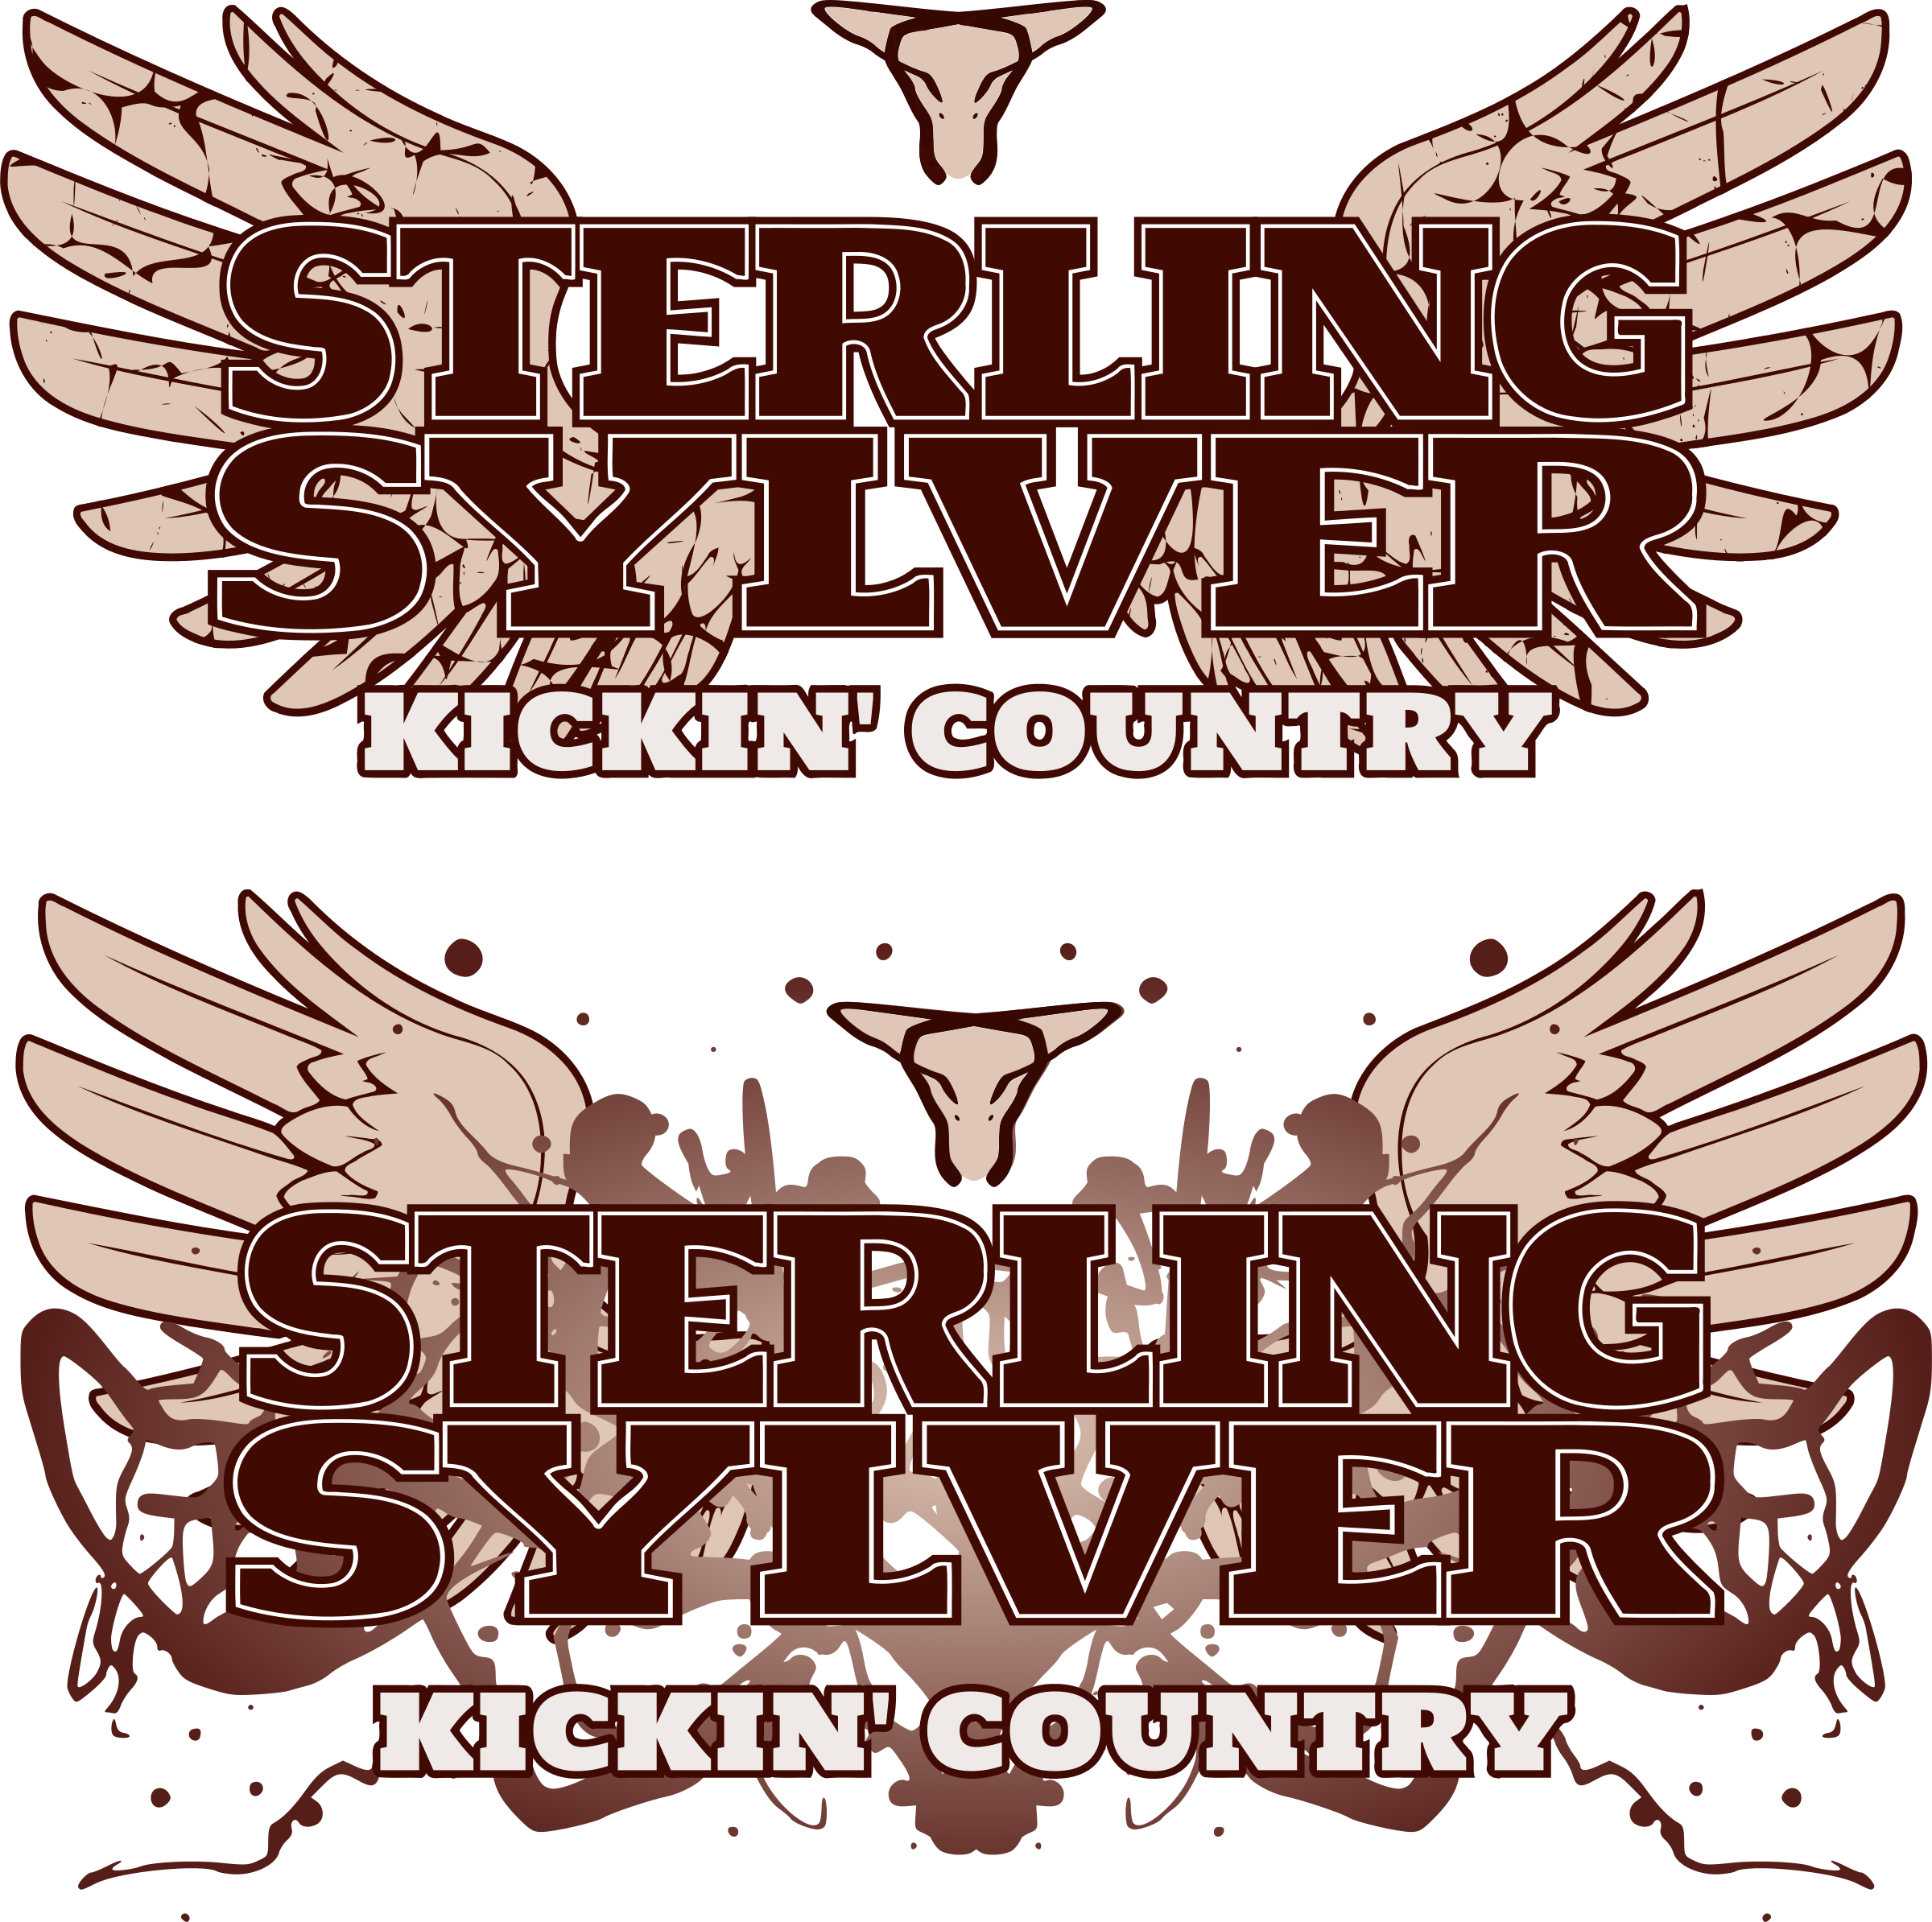 Country band logo by dear_theophilus